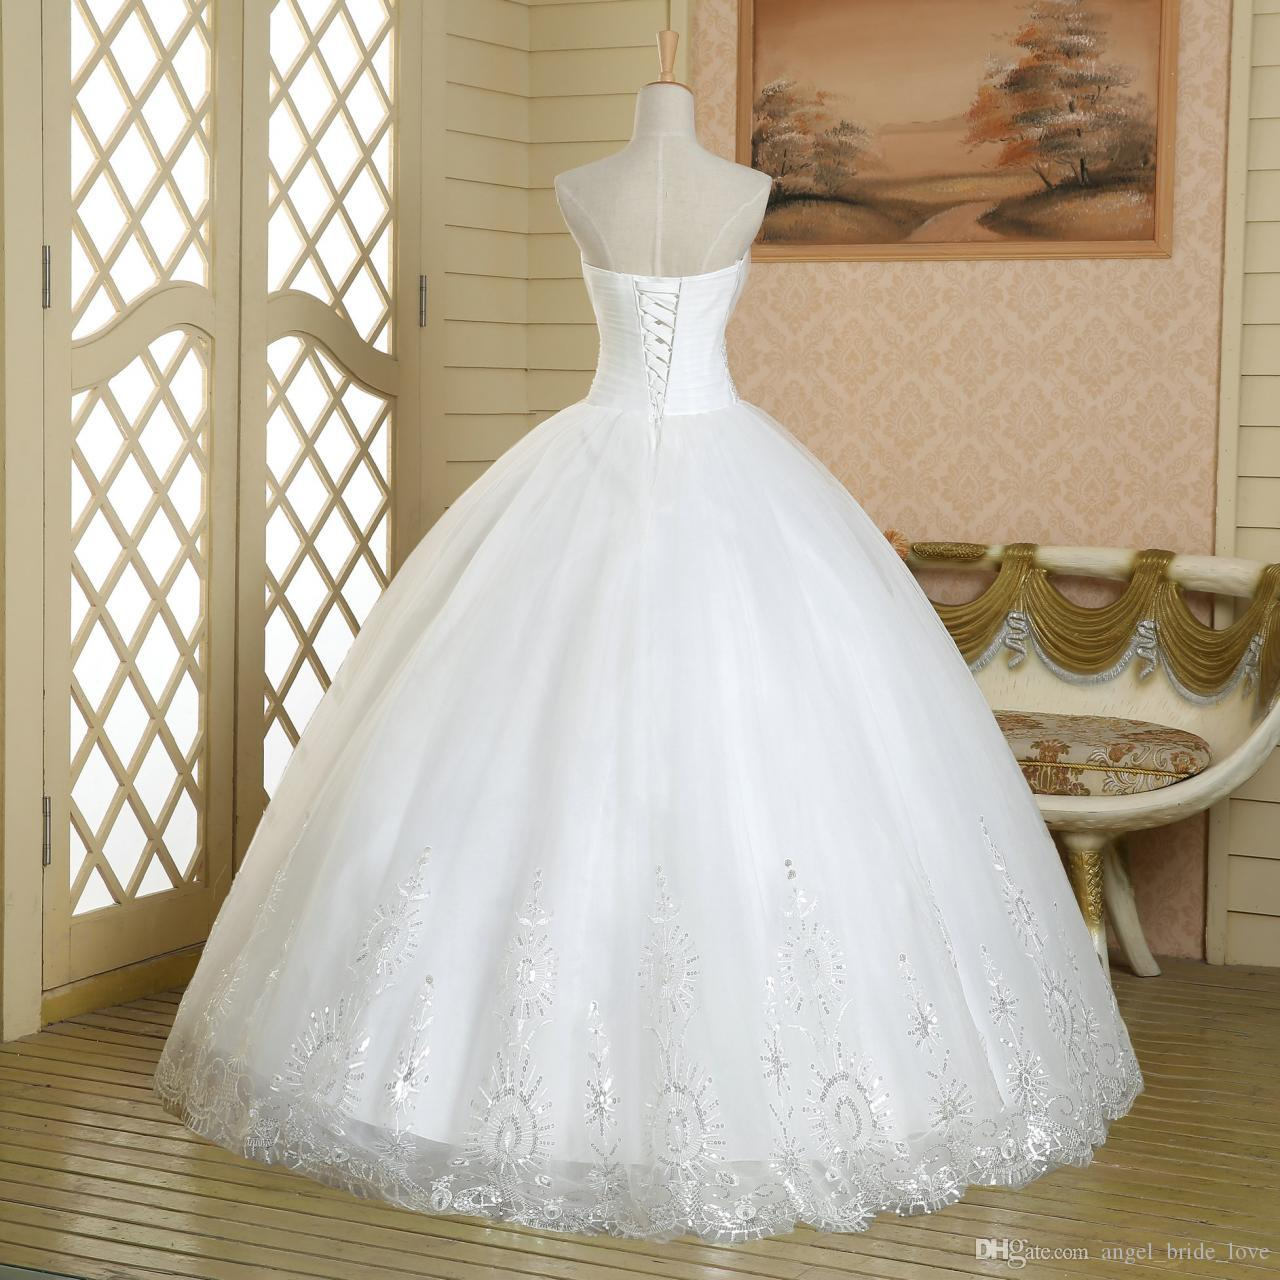 2016 High Quality Ball Gown White Lace Quinceanera Dresses Beaded Crystal Prom Party Sweet 16 Dress Vestidos De 15 Dresses WD227